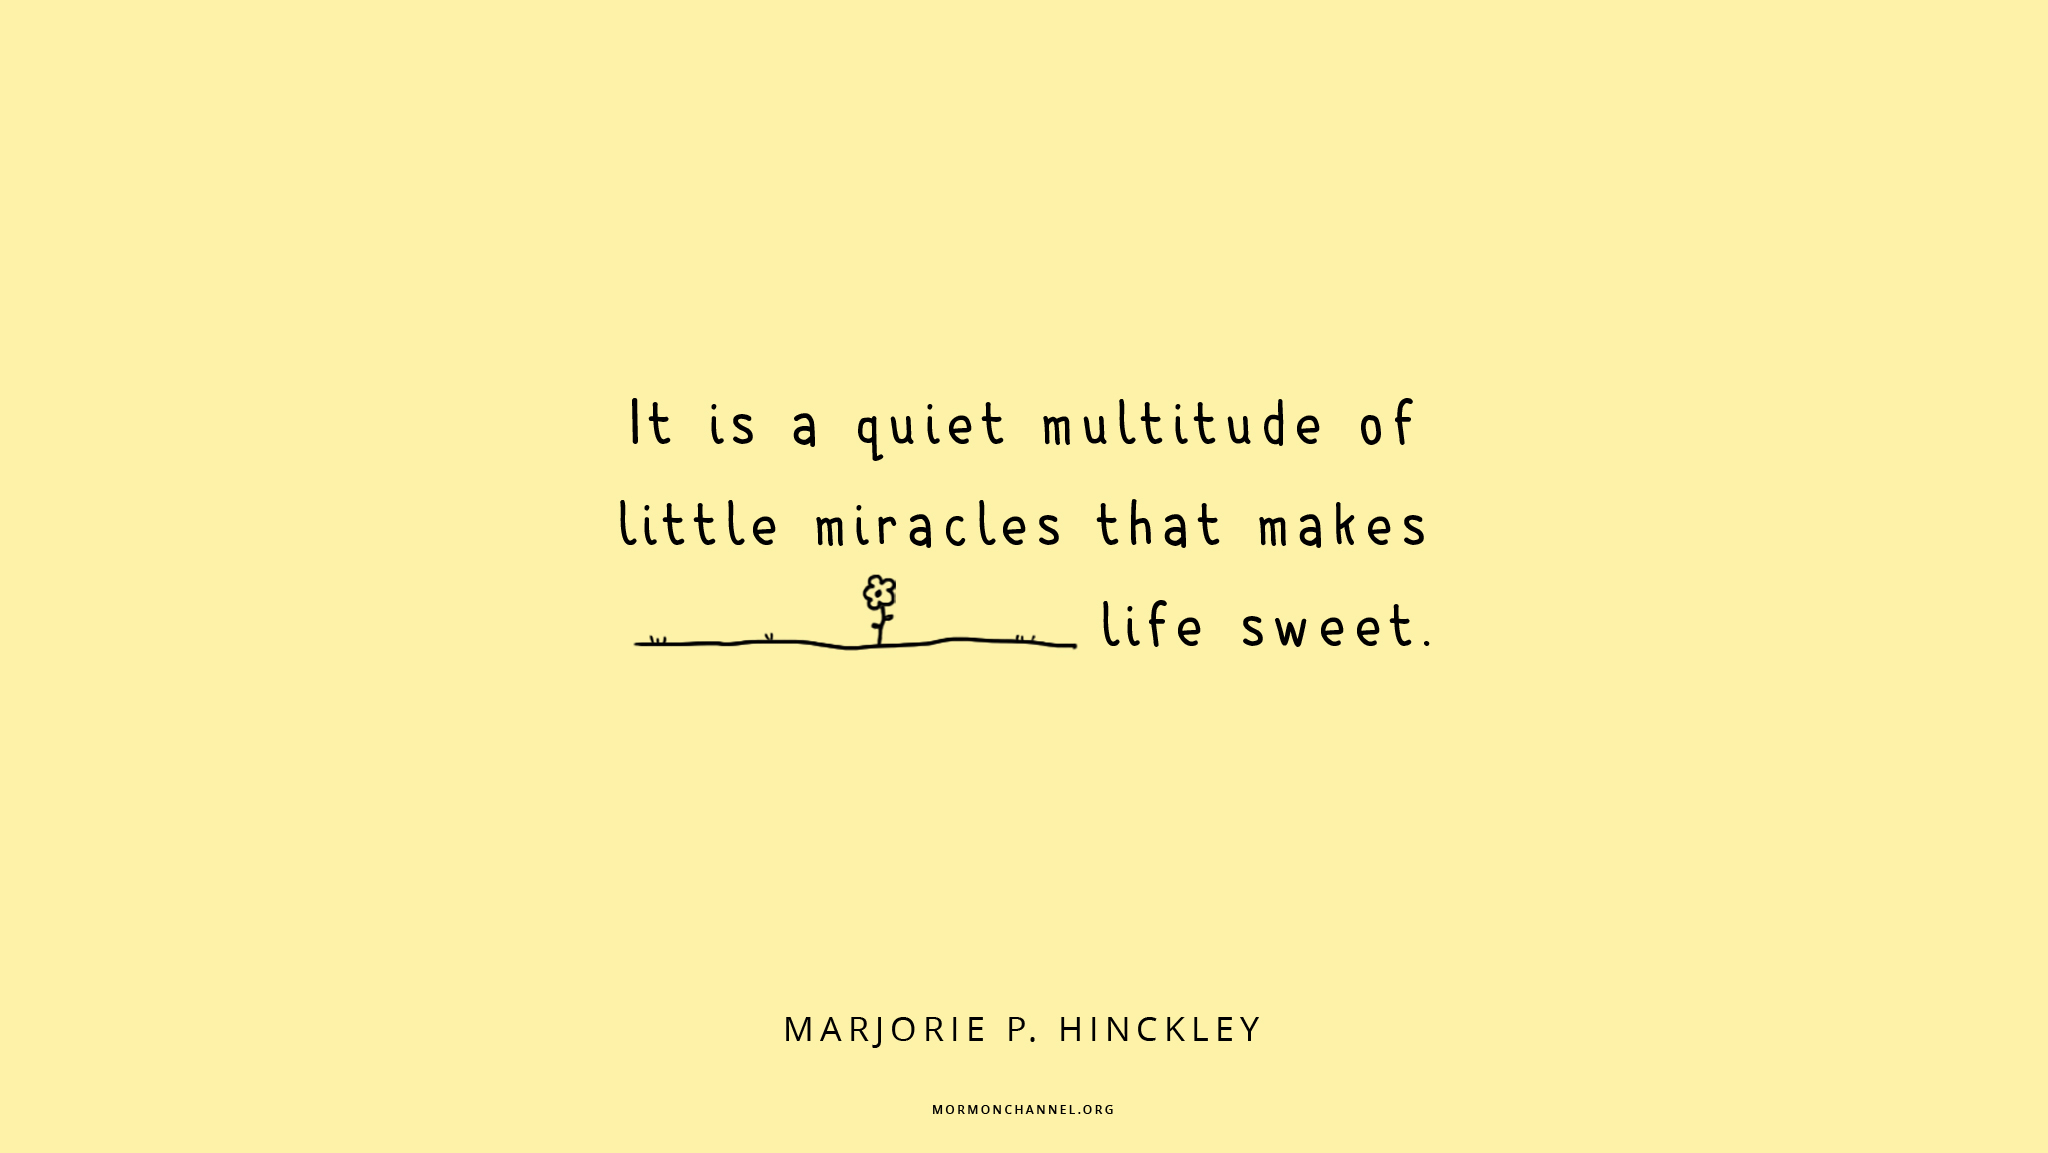 Sweet Quotes Daily Quote Little Miracles Make Life Sweet  Mormon Channel